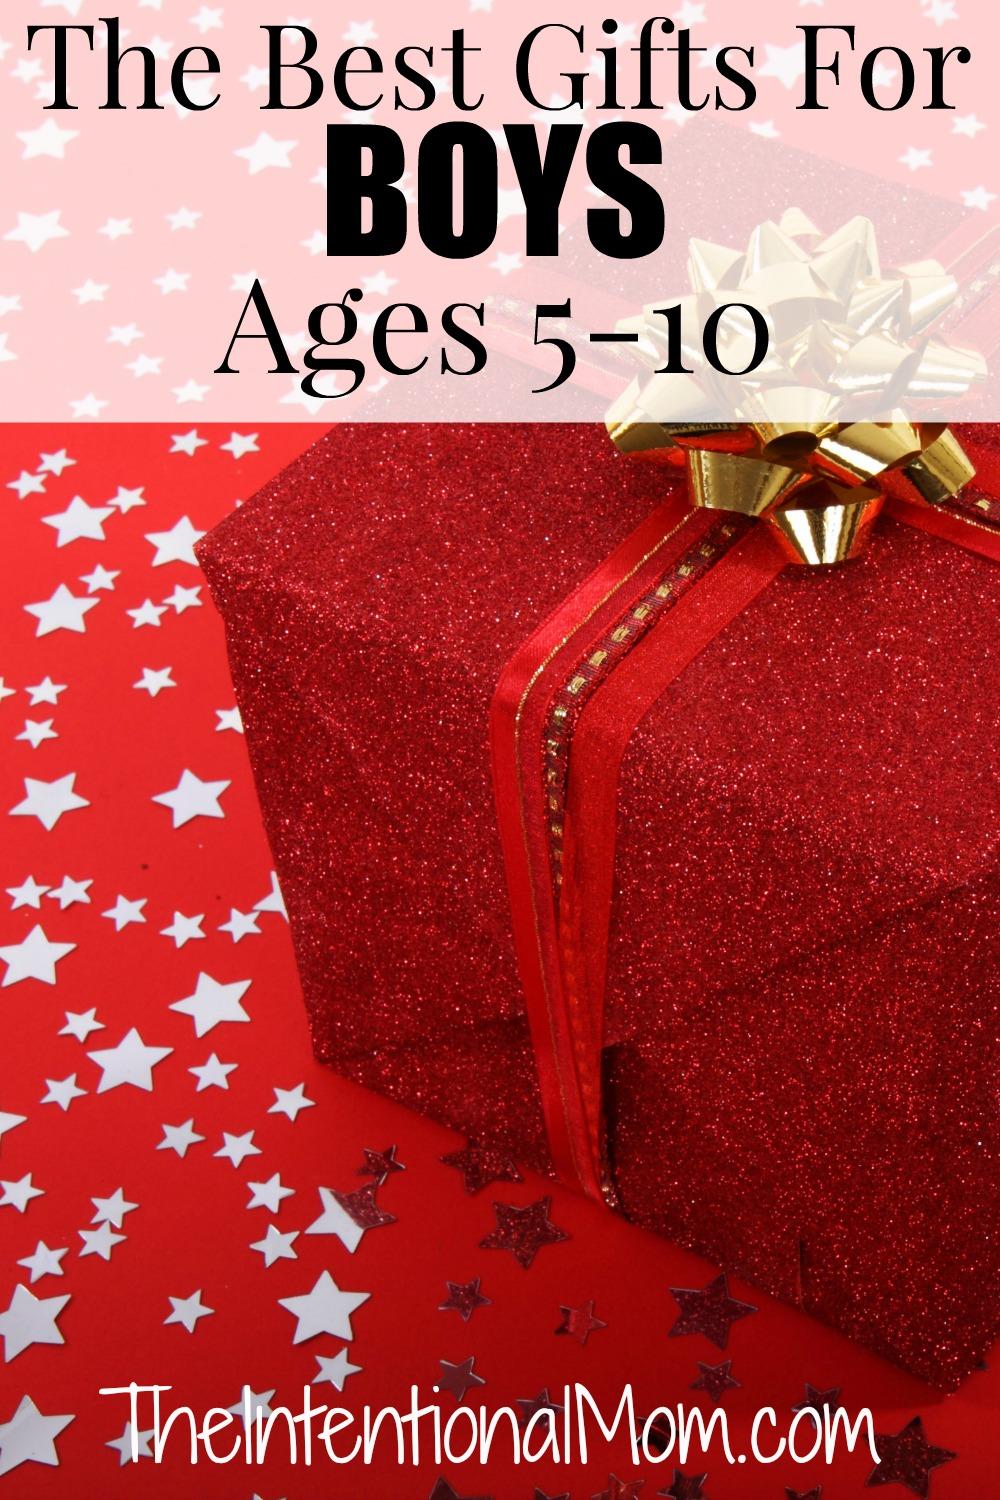 gifts for boys 5-10